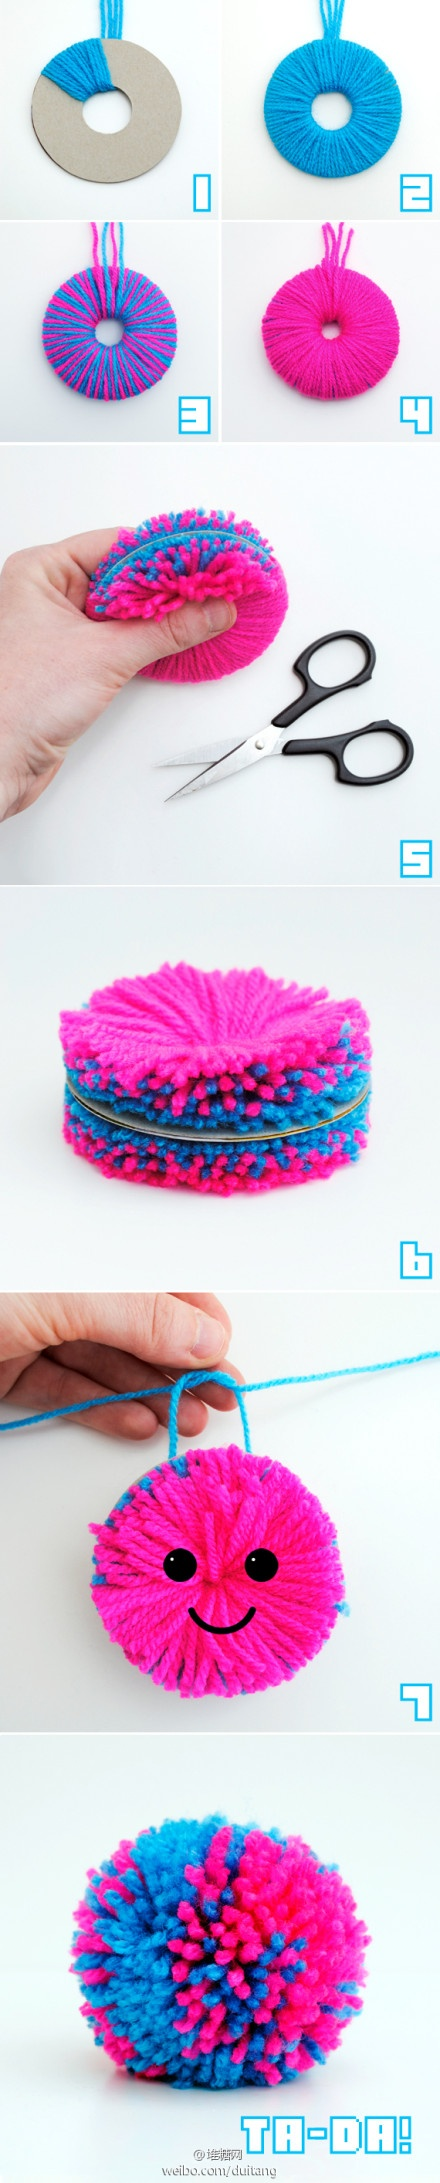 DIY pom poms - I love  making these because they're so fun to make for a project and so colorful!